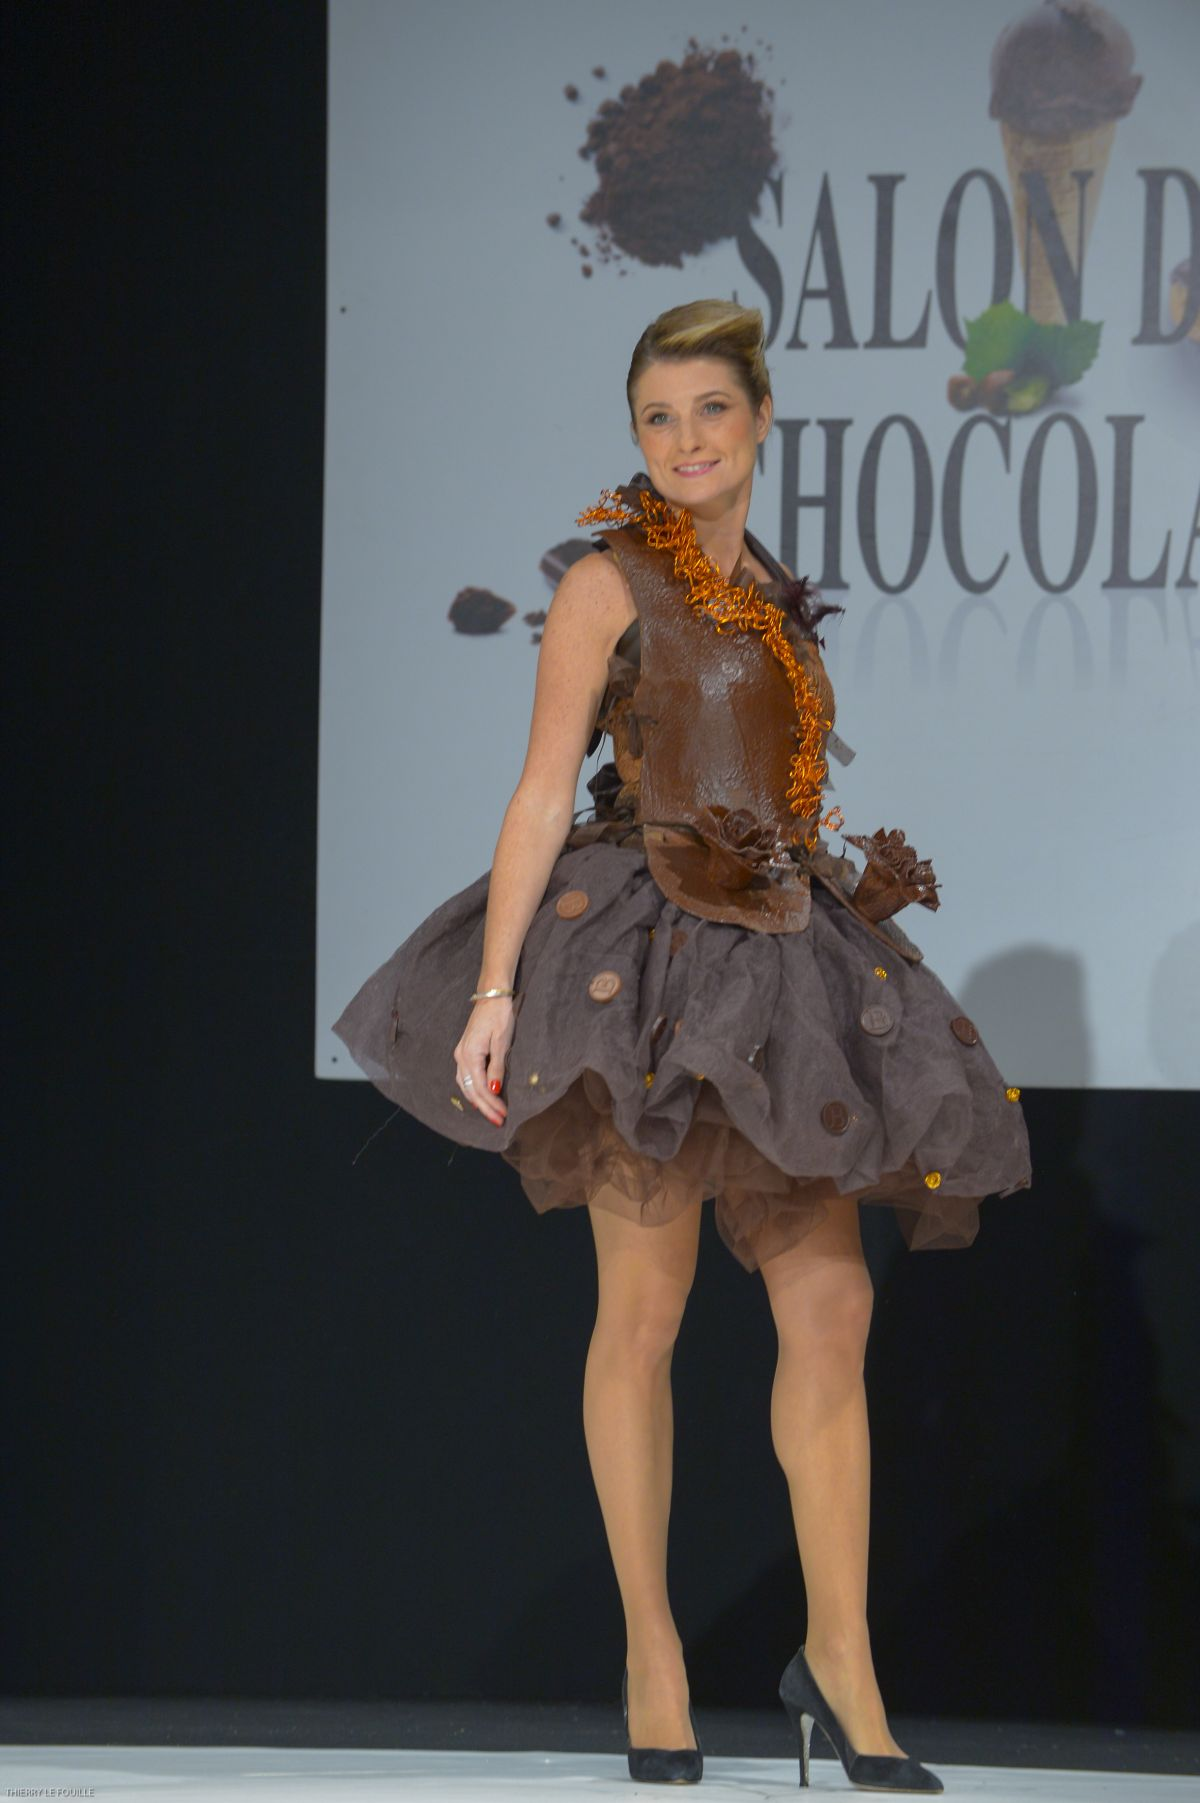 Saloni Paris Sandrine Arcizet At Salon Du Chocolat 2017 At Paris Porte De